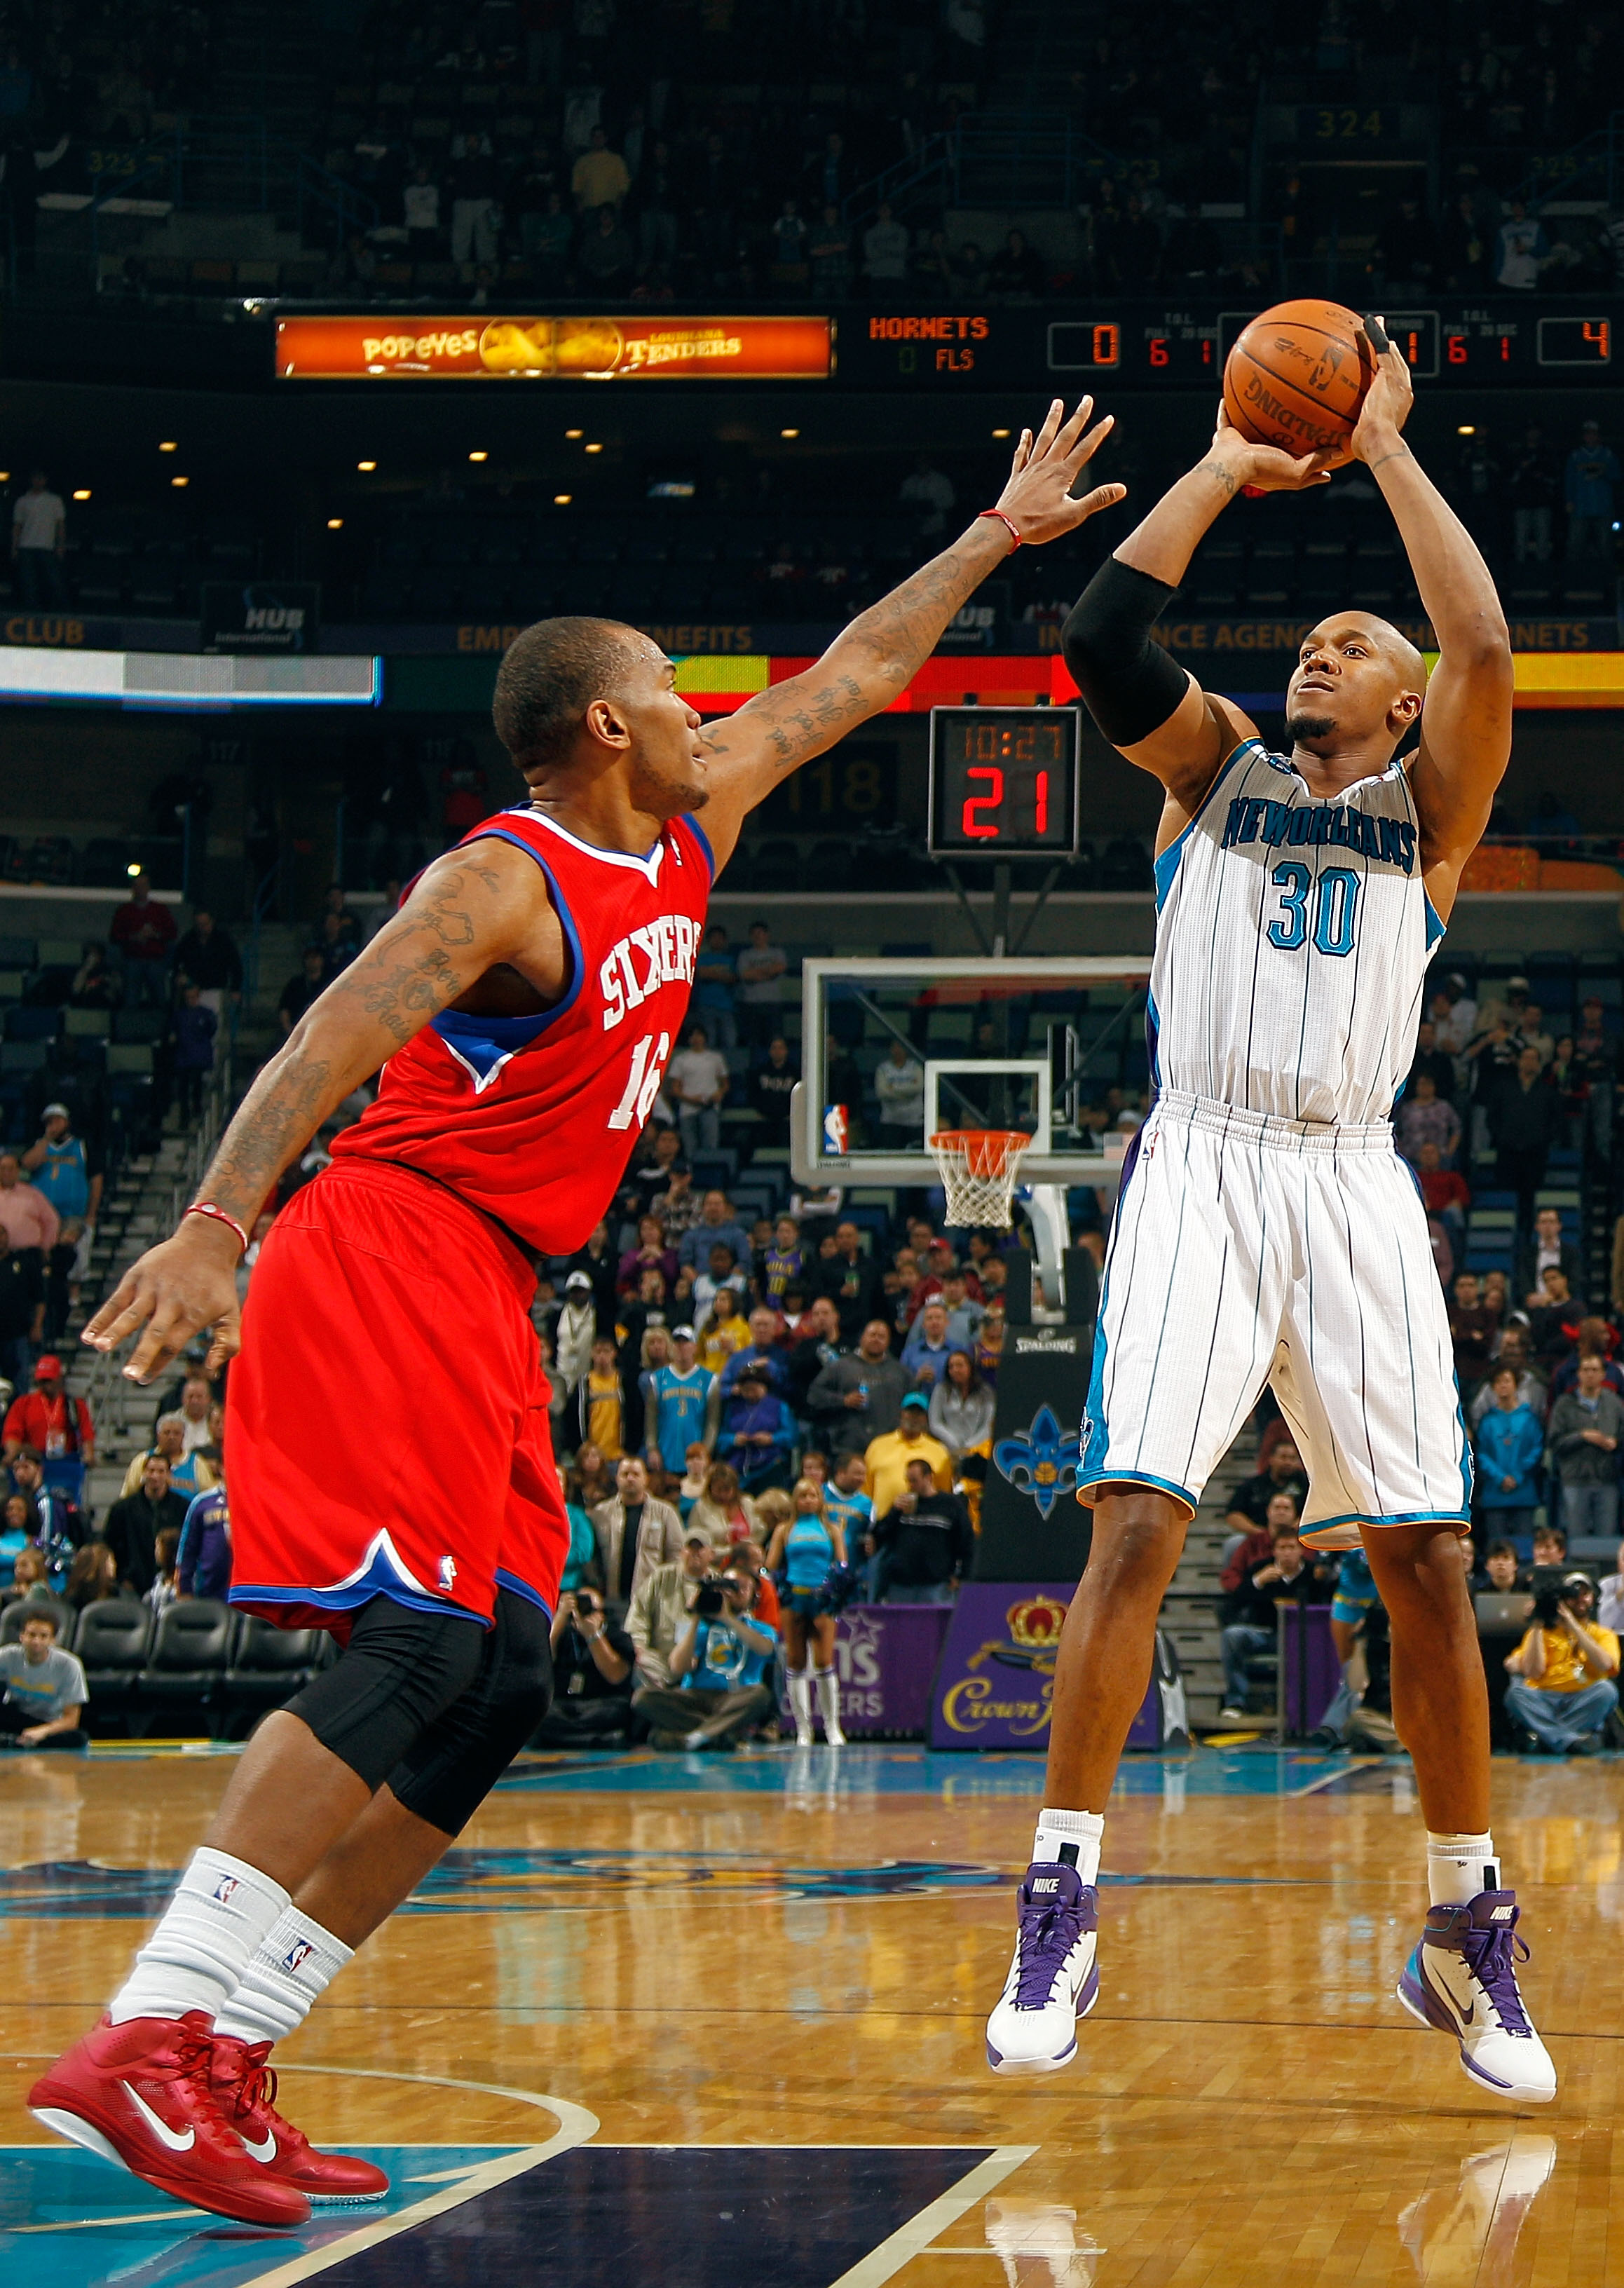 NEW ORLEANS, LA - JANUARY 03:  David West #30 of the New Orleans Hornets shoots the ball  over Marreese Speights #16 of the Philadelphia 76ers in the first half at New Orleans Arena on January 3, 2011 in New Orleans, Louisiana. NOTE TO USER: User expressl